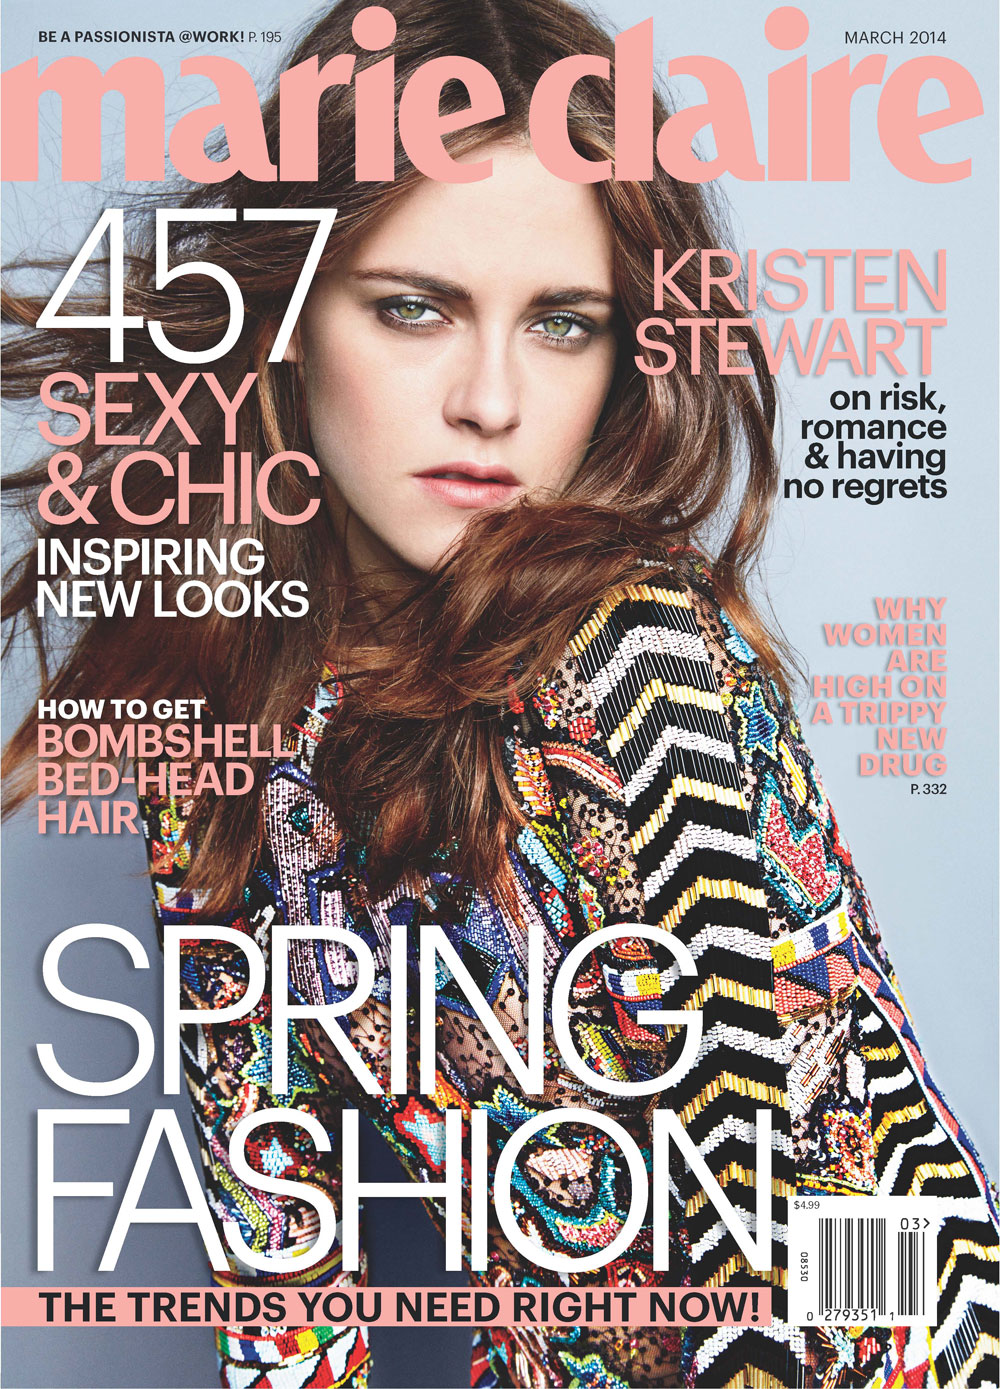 kristen-stewart-marie-claire-march-2014-tom-lorenzo-site-1